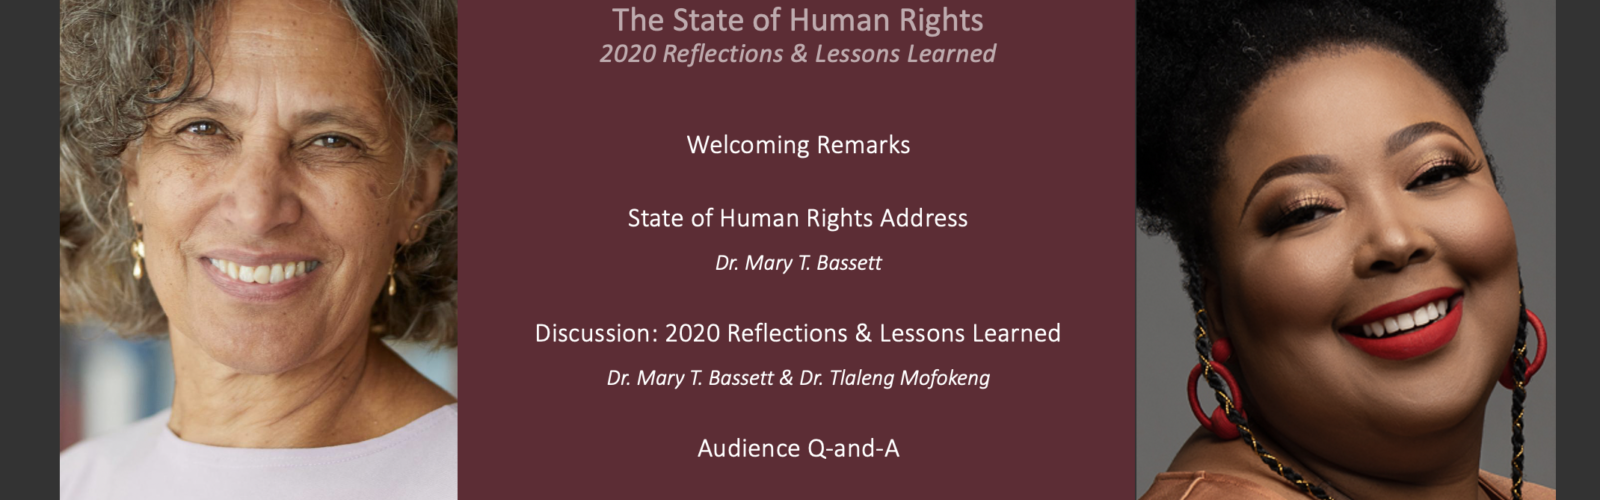 State of Human Rights: 2020 Reflections and Lessons Learned